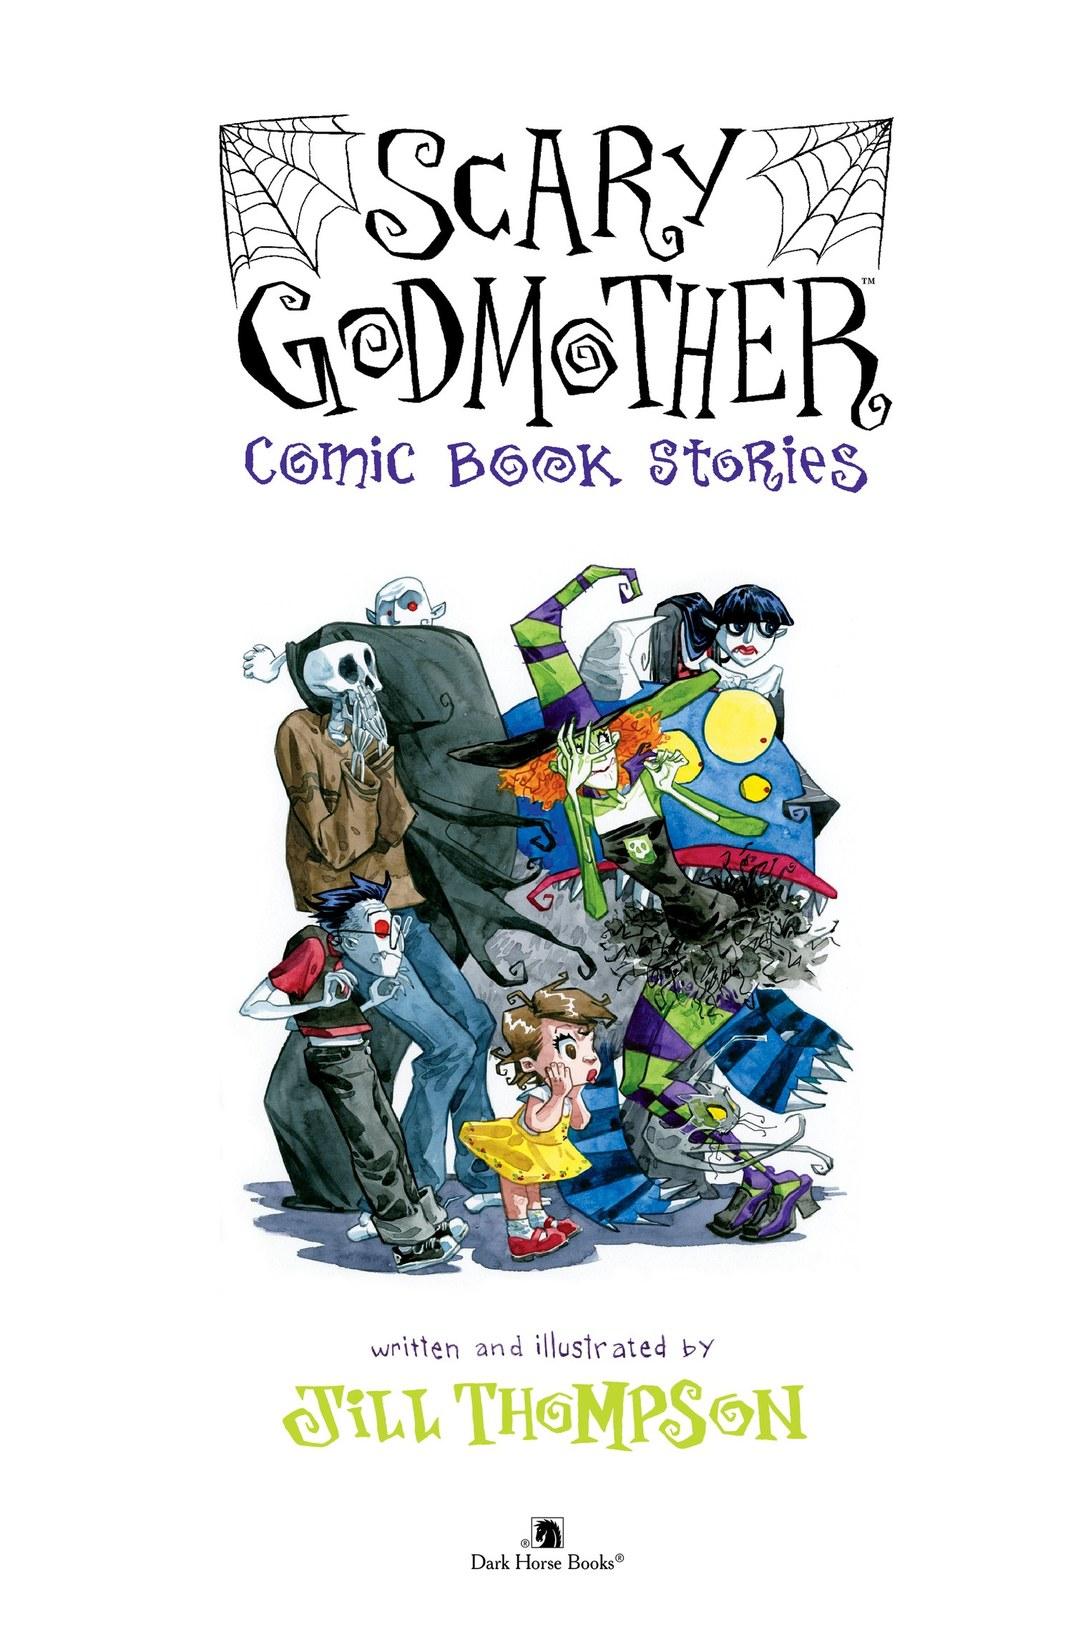 Read online Scary Godmother Comic Book Stories comic -  Issue # TPB - 2